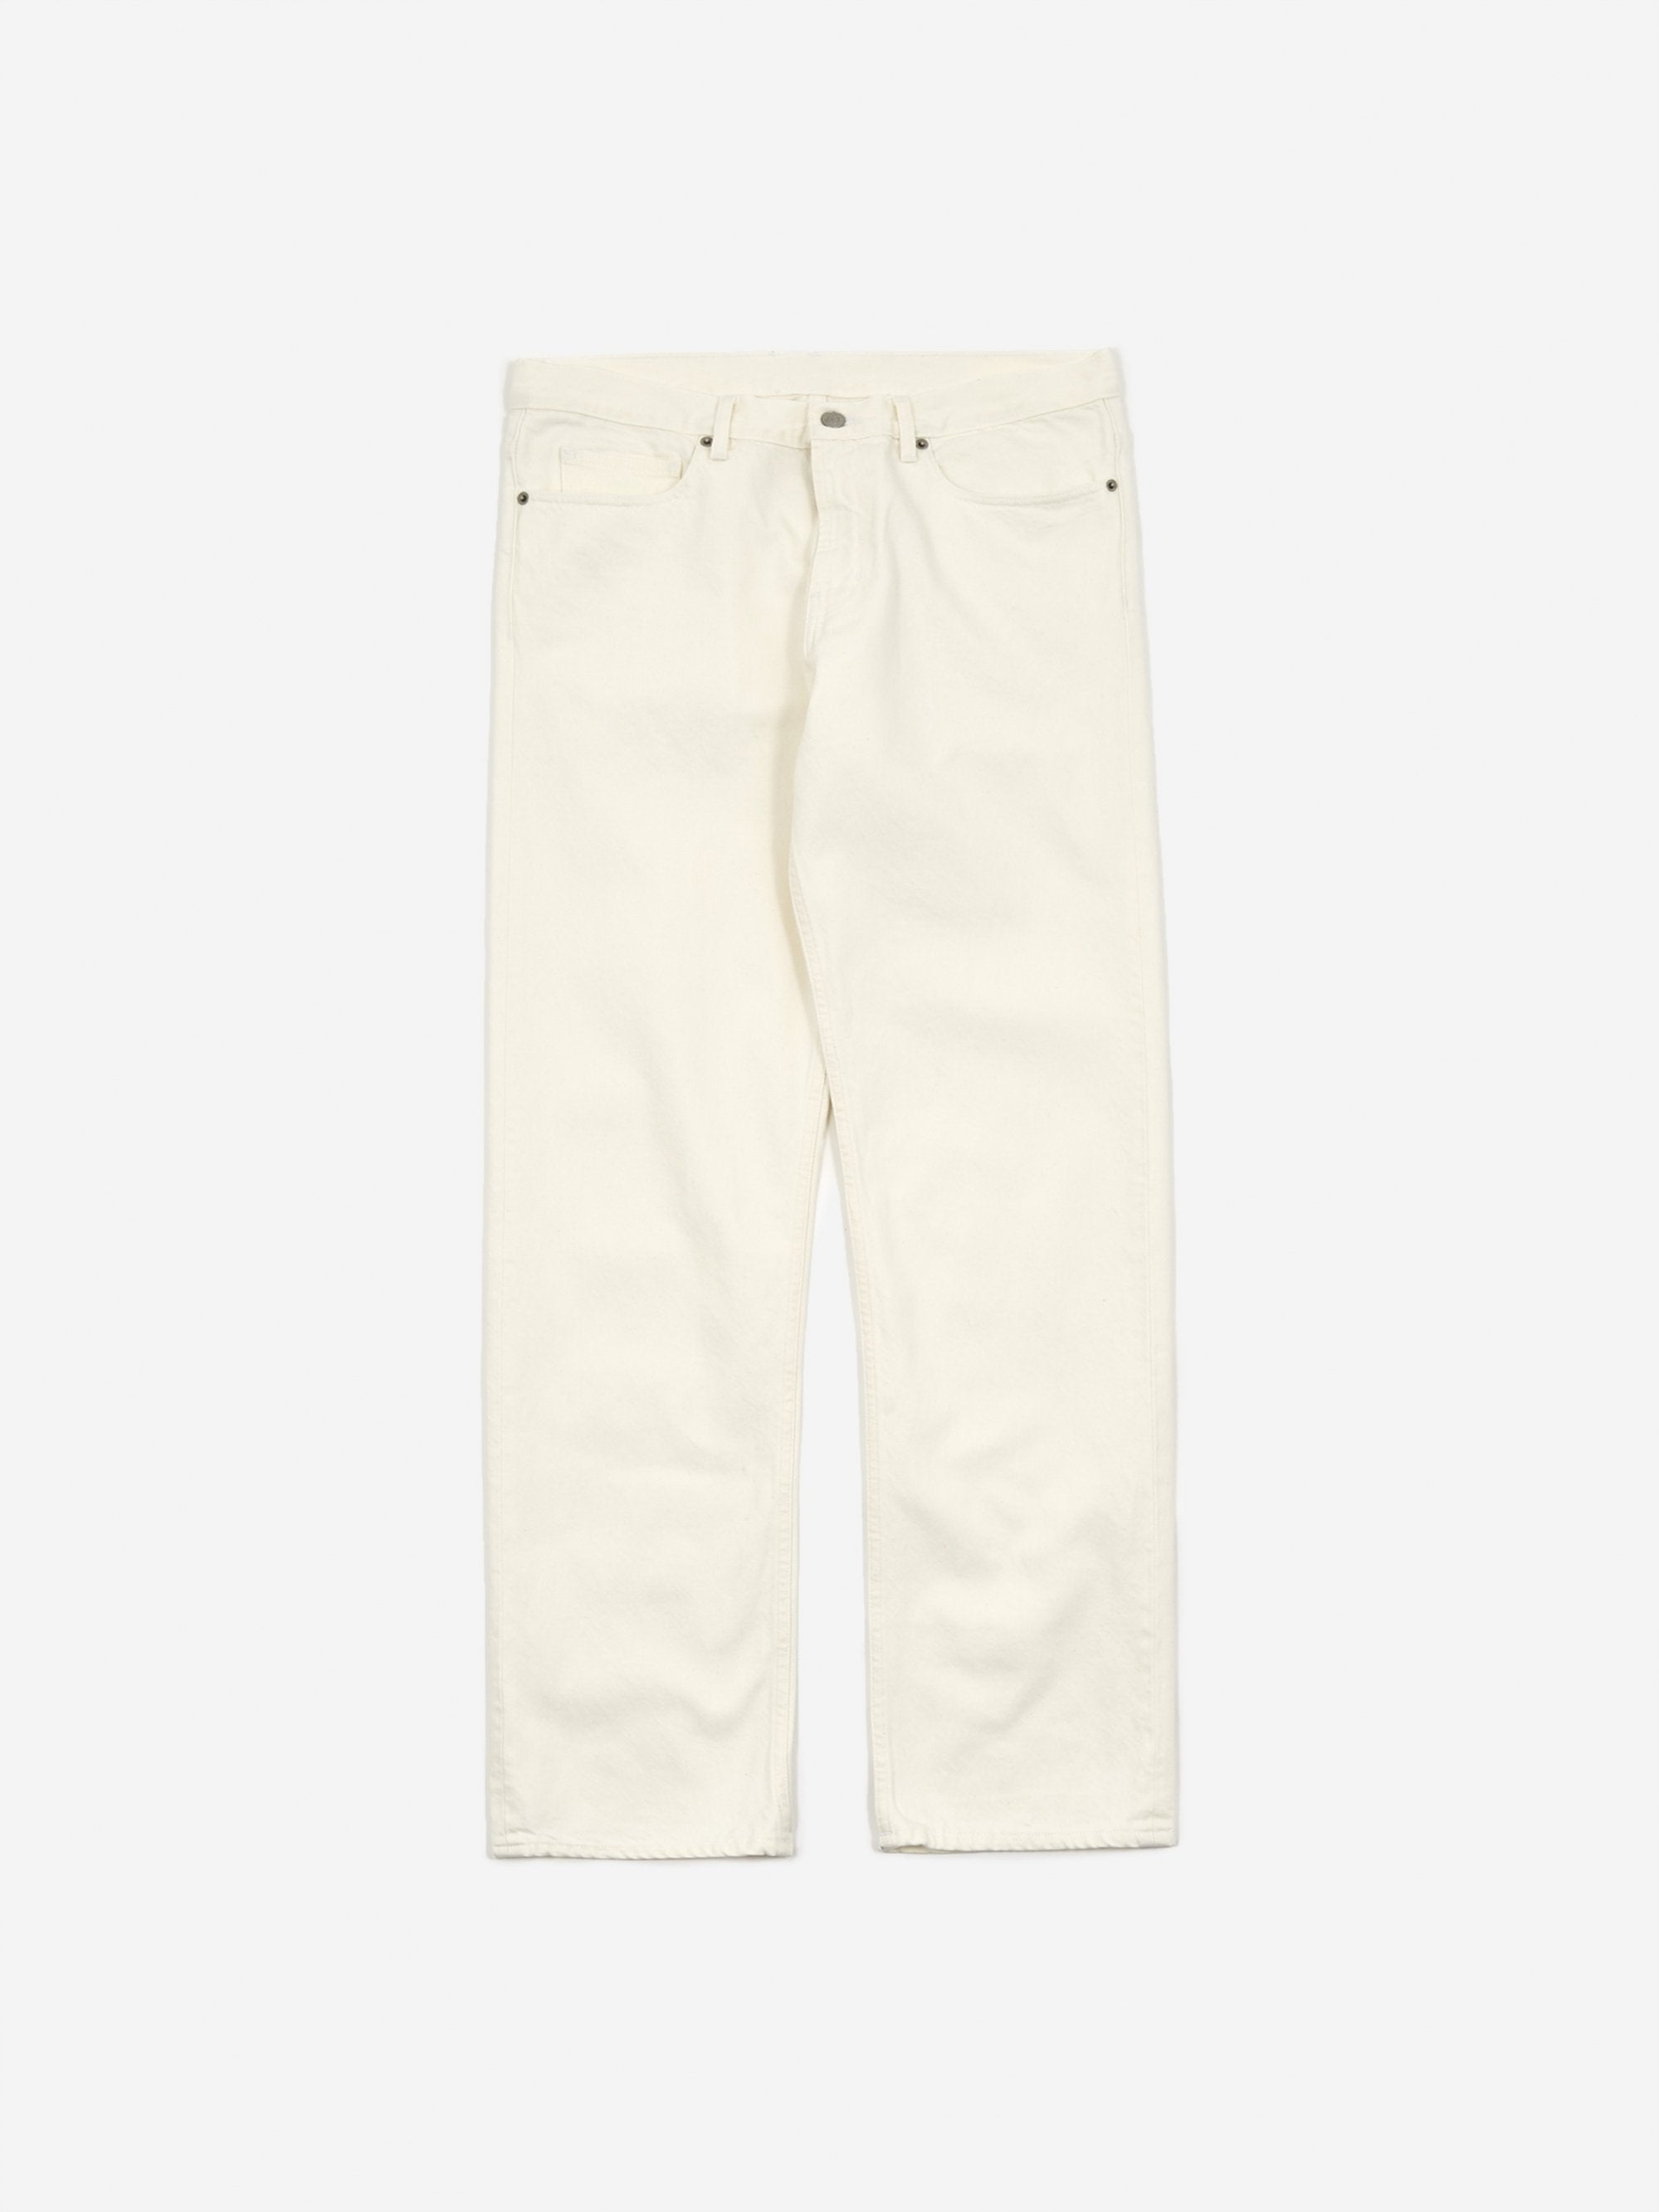 NWT Norse Projects Luther Straight Short Ivy Green XS, S, L